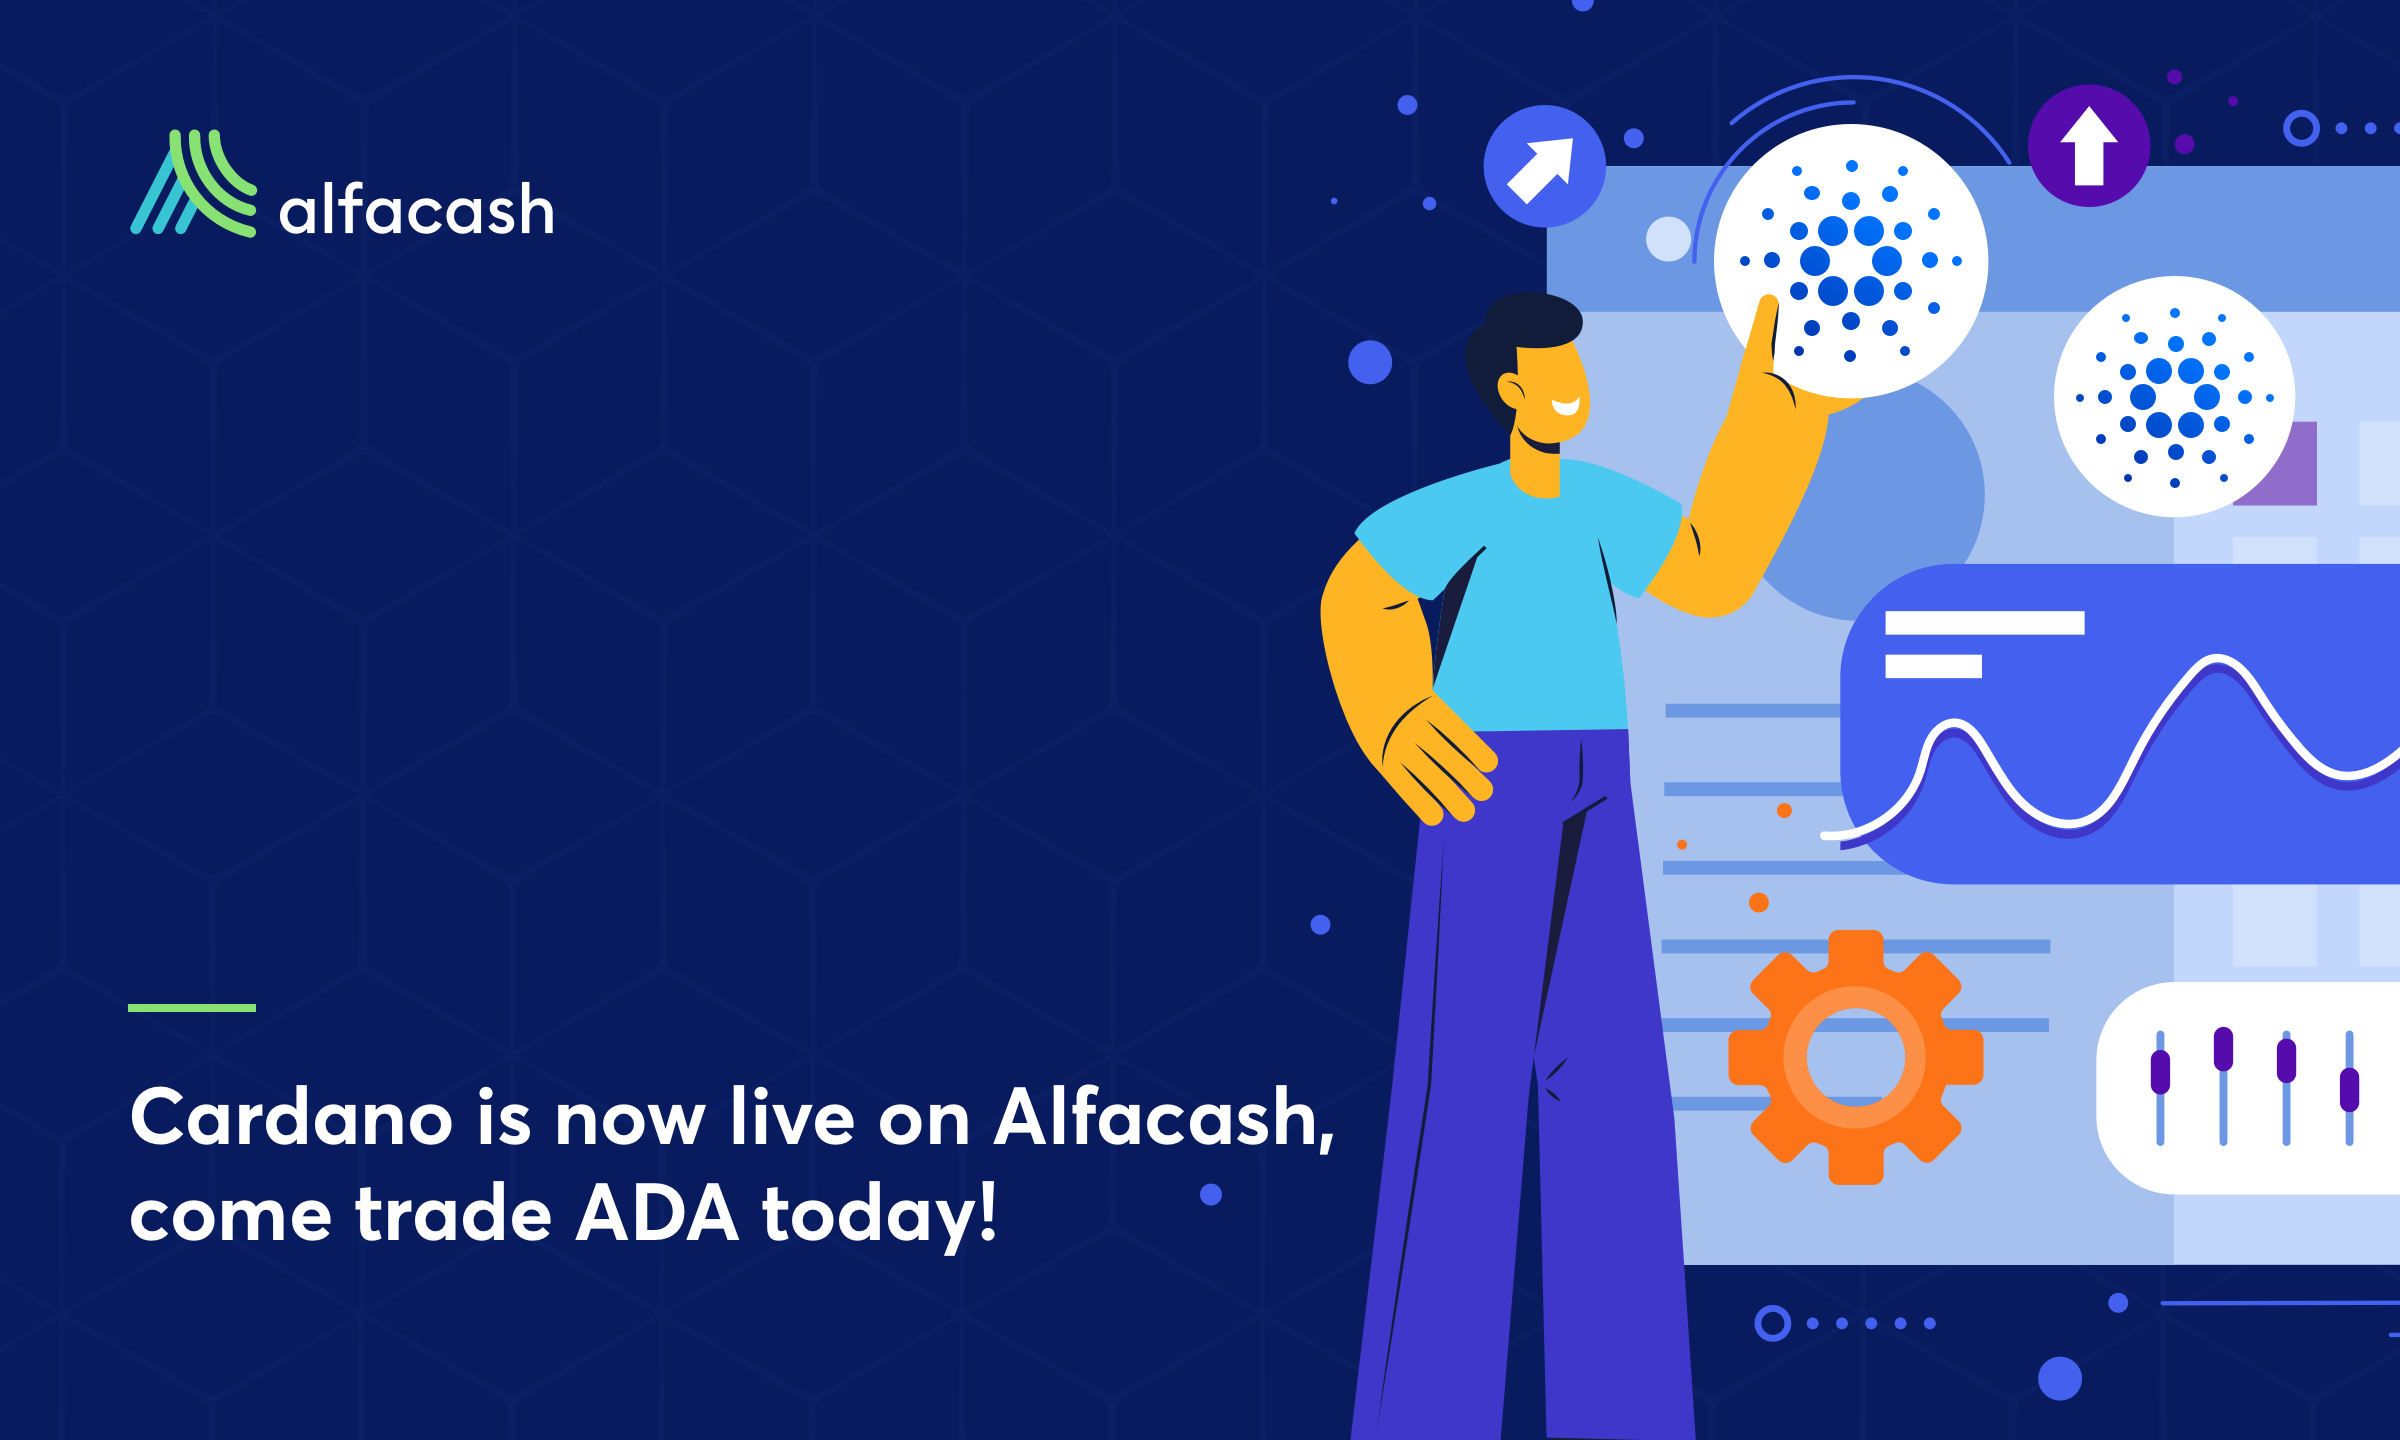 Cardano (ADA) Is Now Available for Trading on Alfacash!